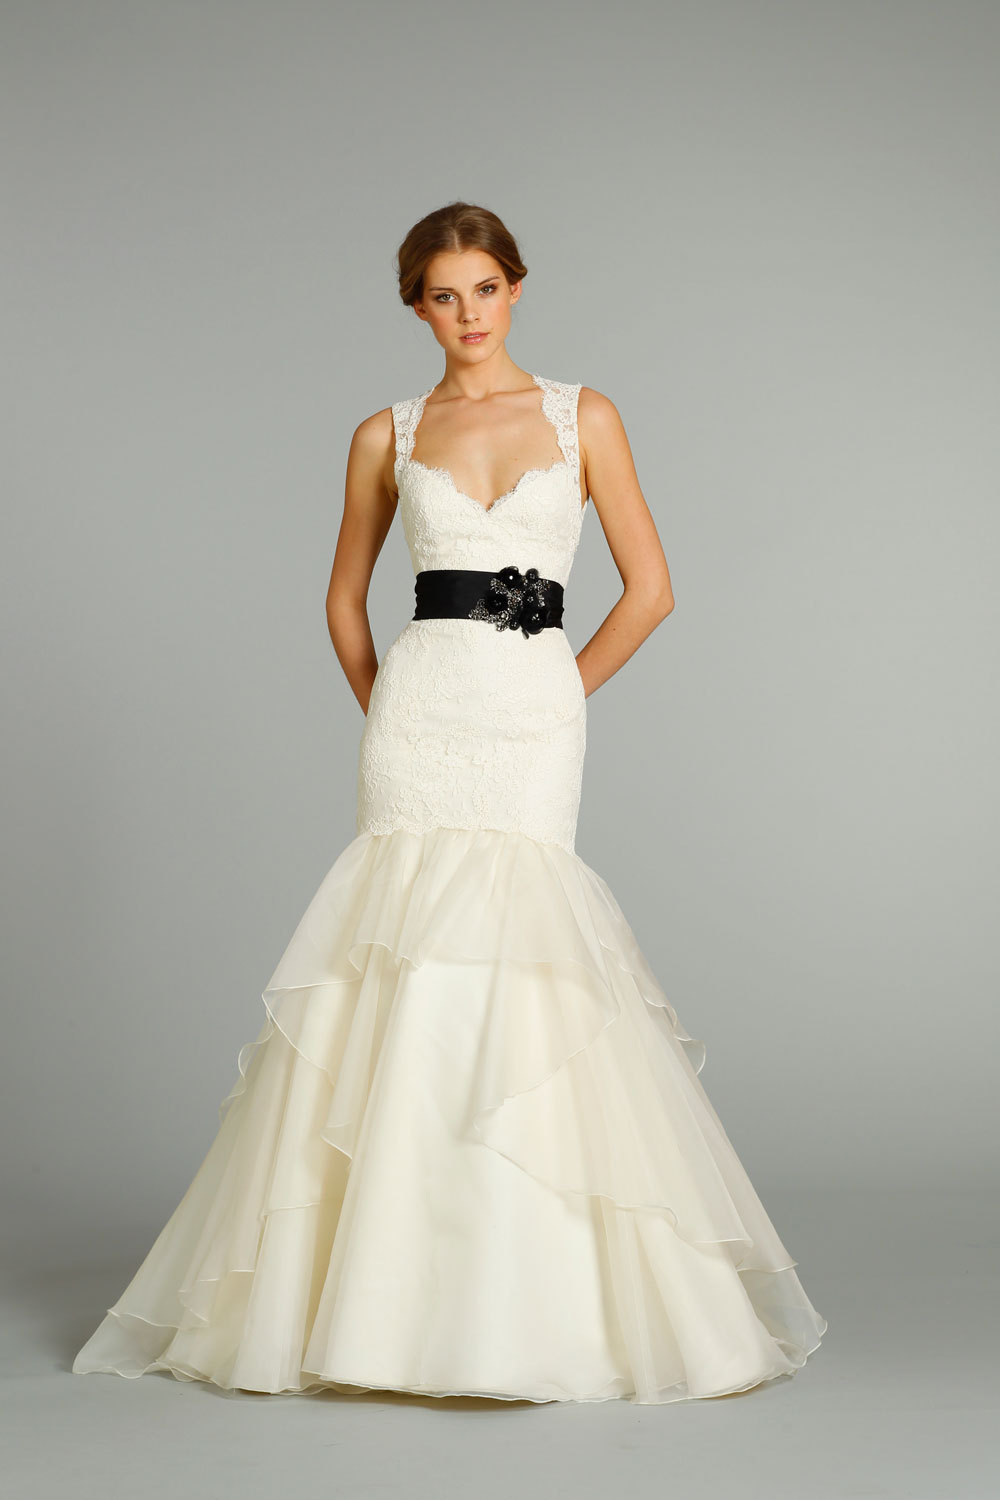 Fall-2012-wedding-dress-jim-hjelm-bridal-gowns-8262.full